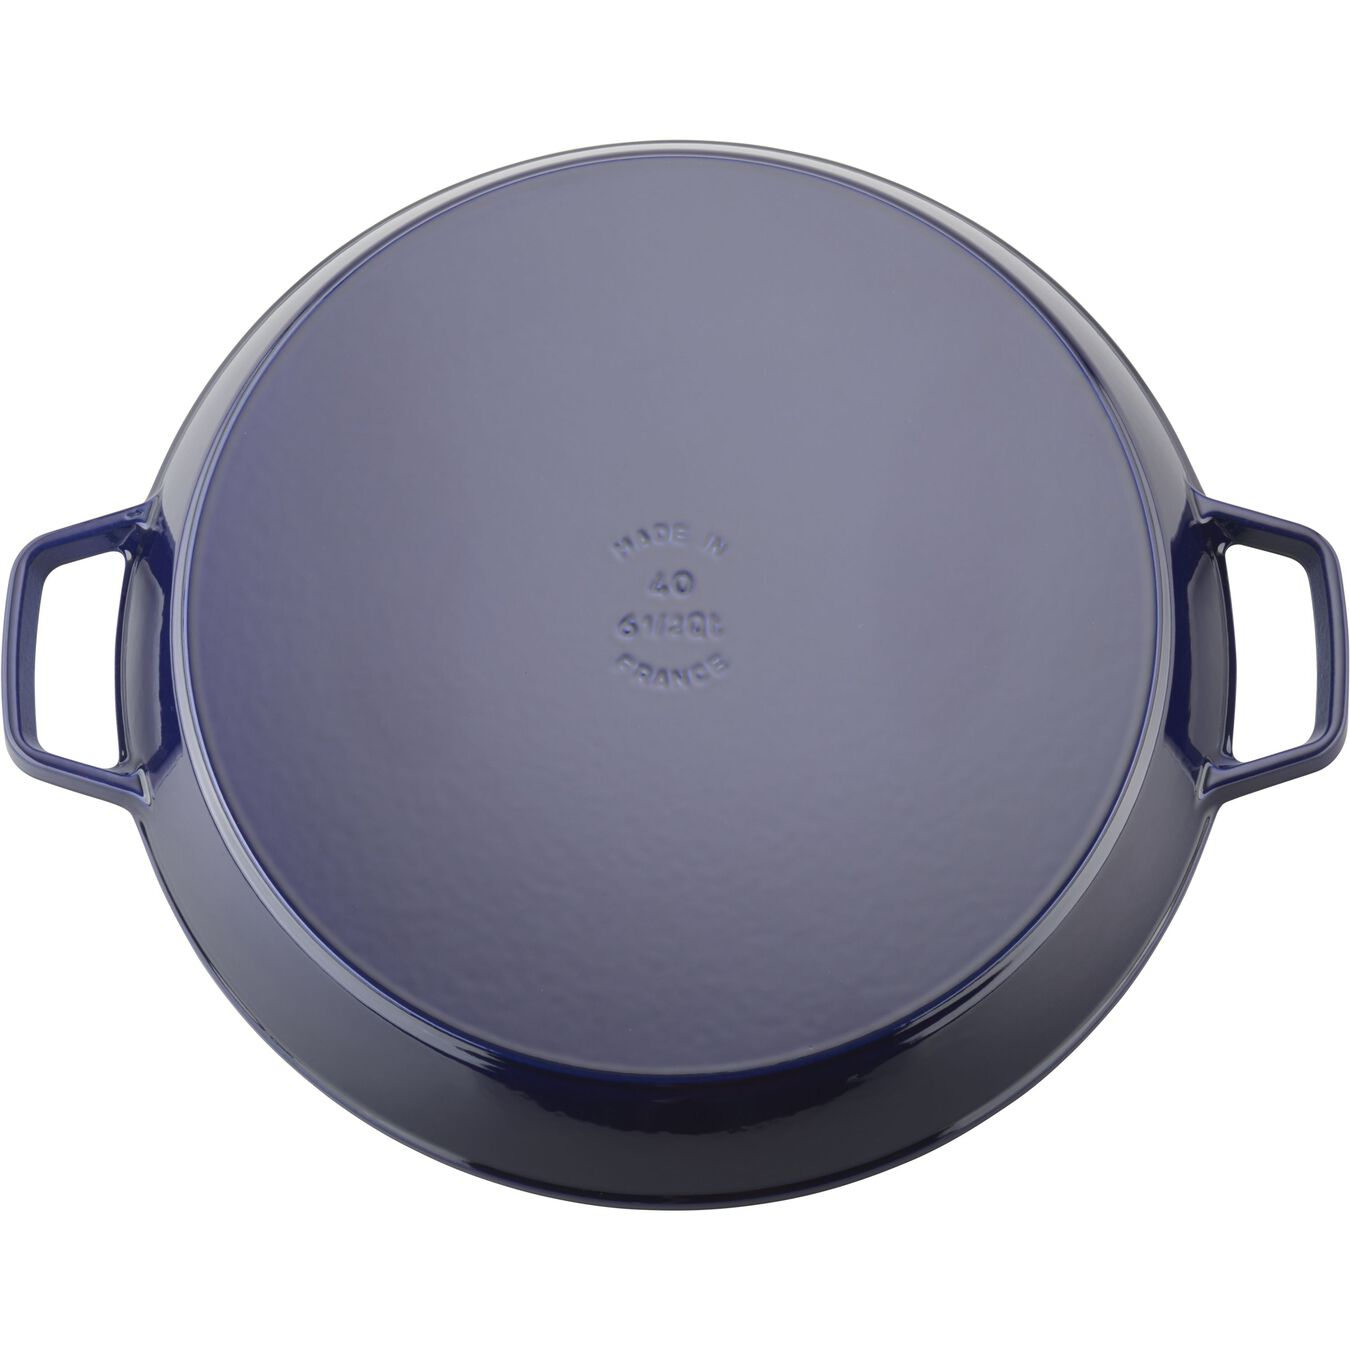 15.75 inch, Double Handle Fry Pan, dark blue,,large 3